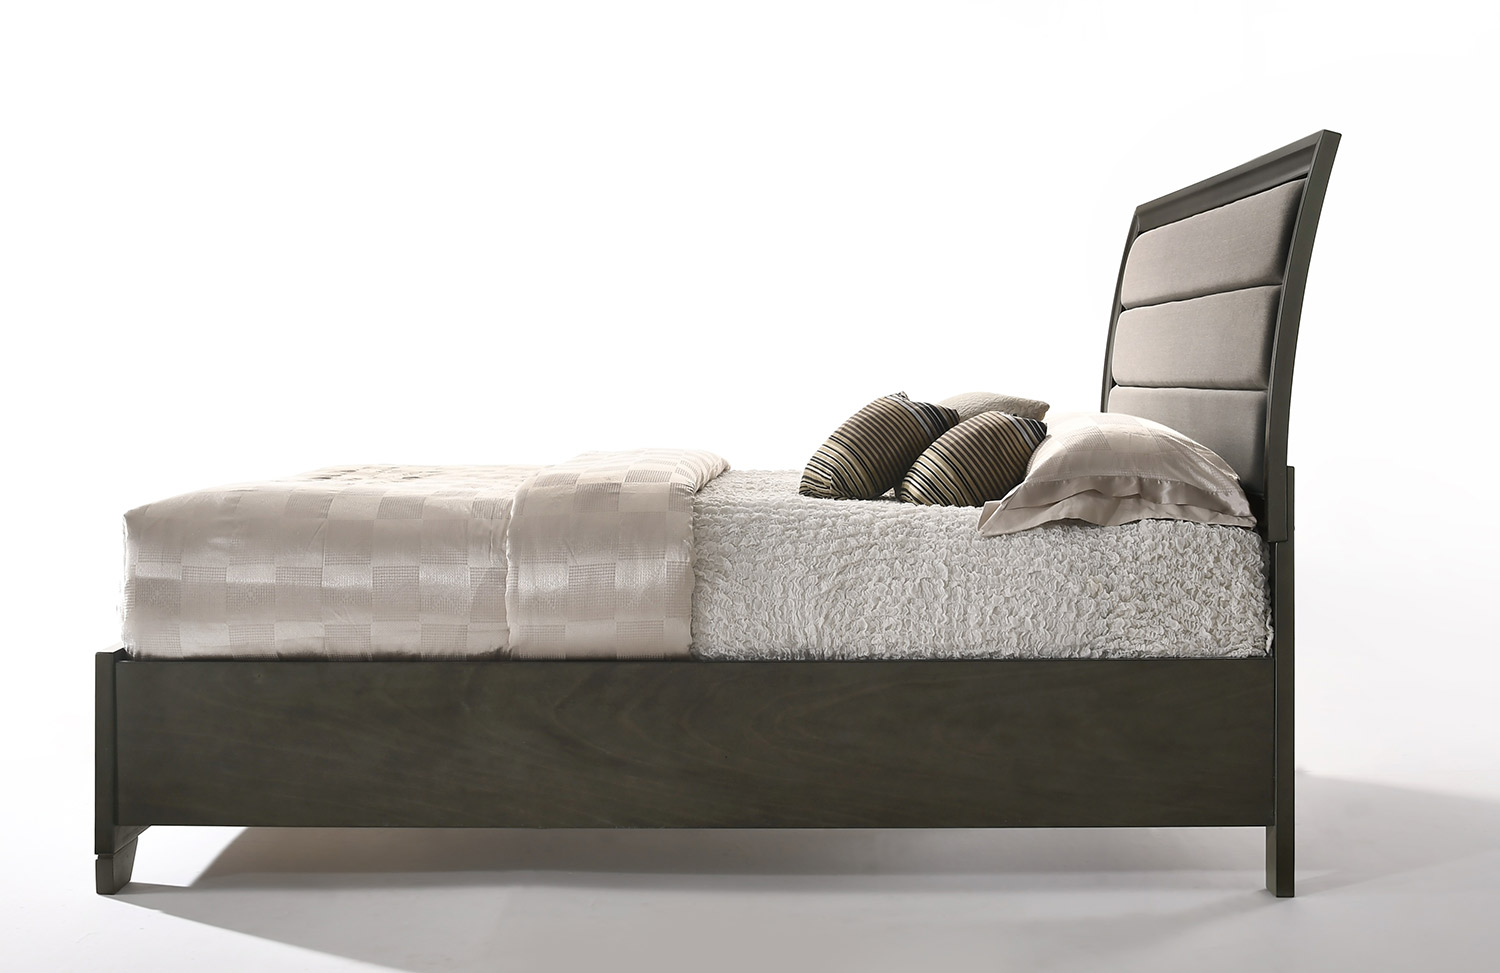 Acme Soteris Bed with Storage - Gray Fabric/Antique Gray